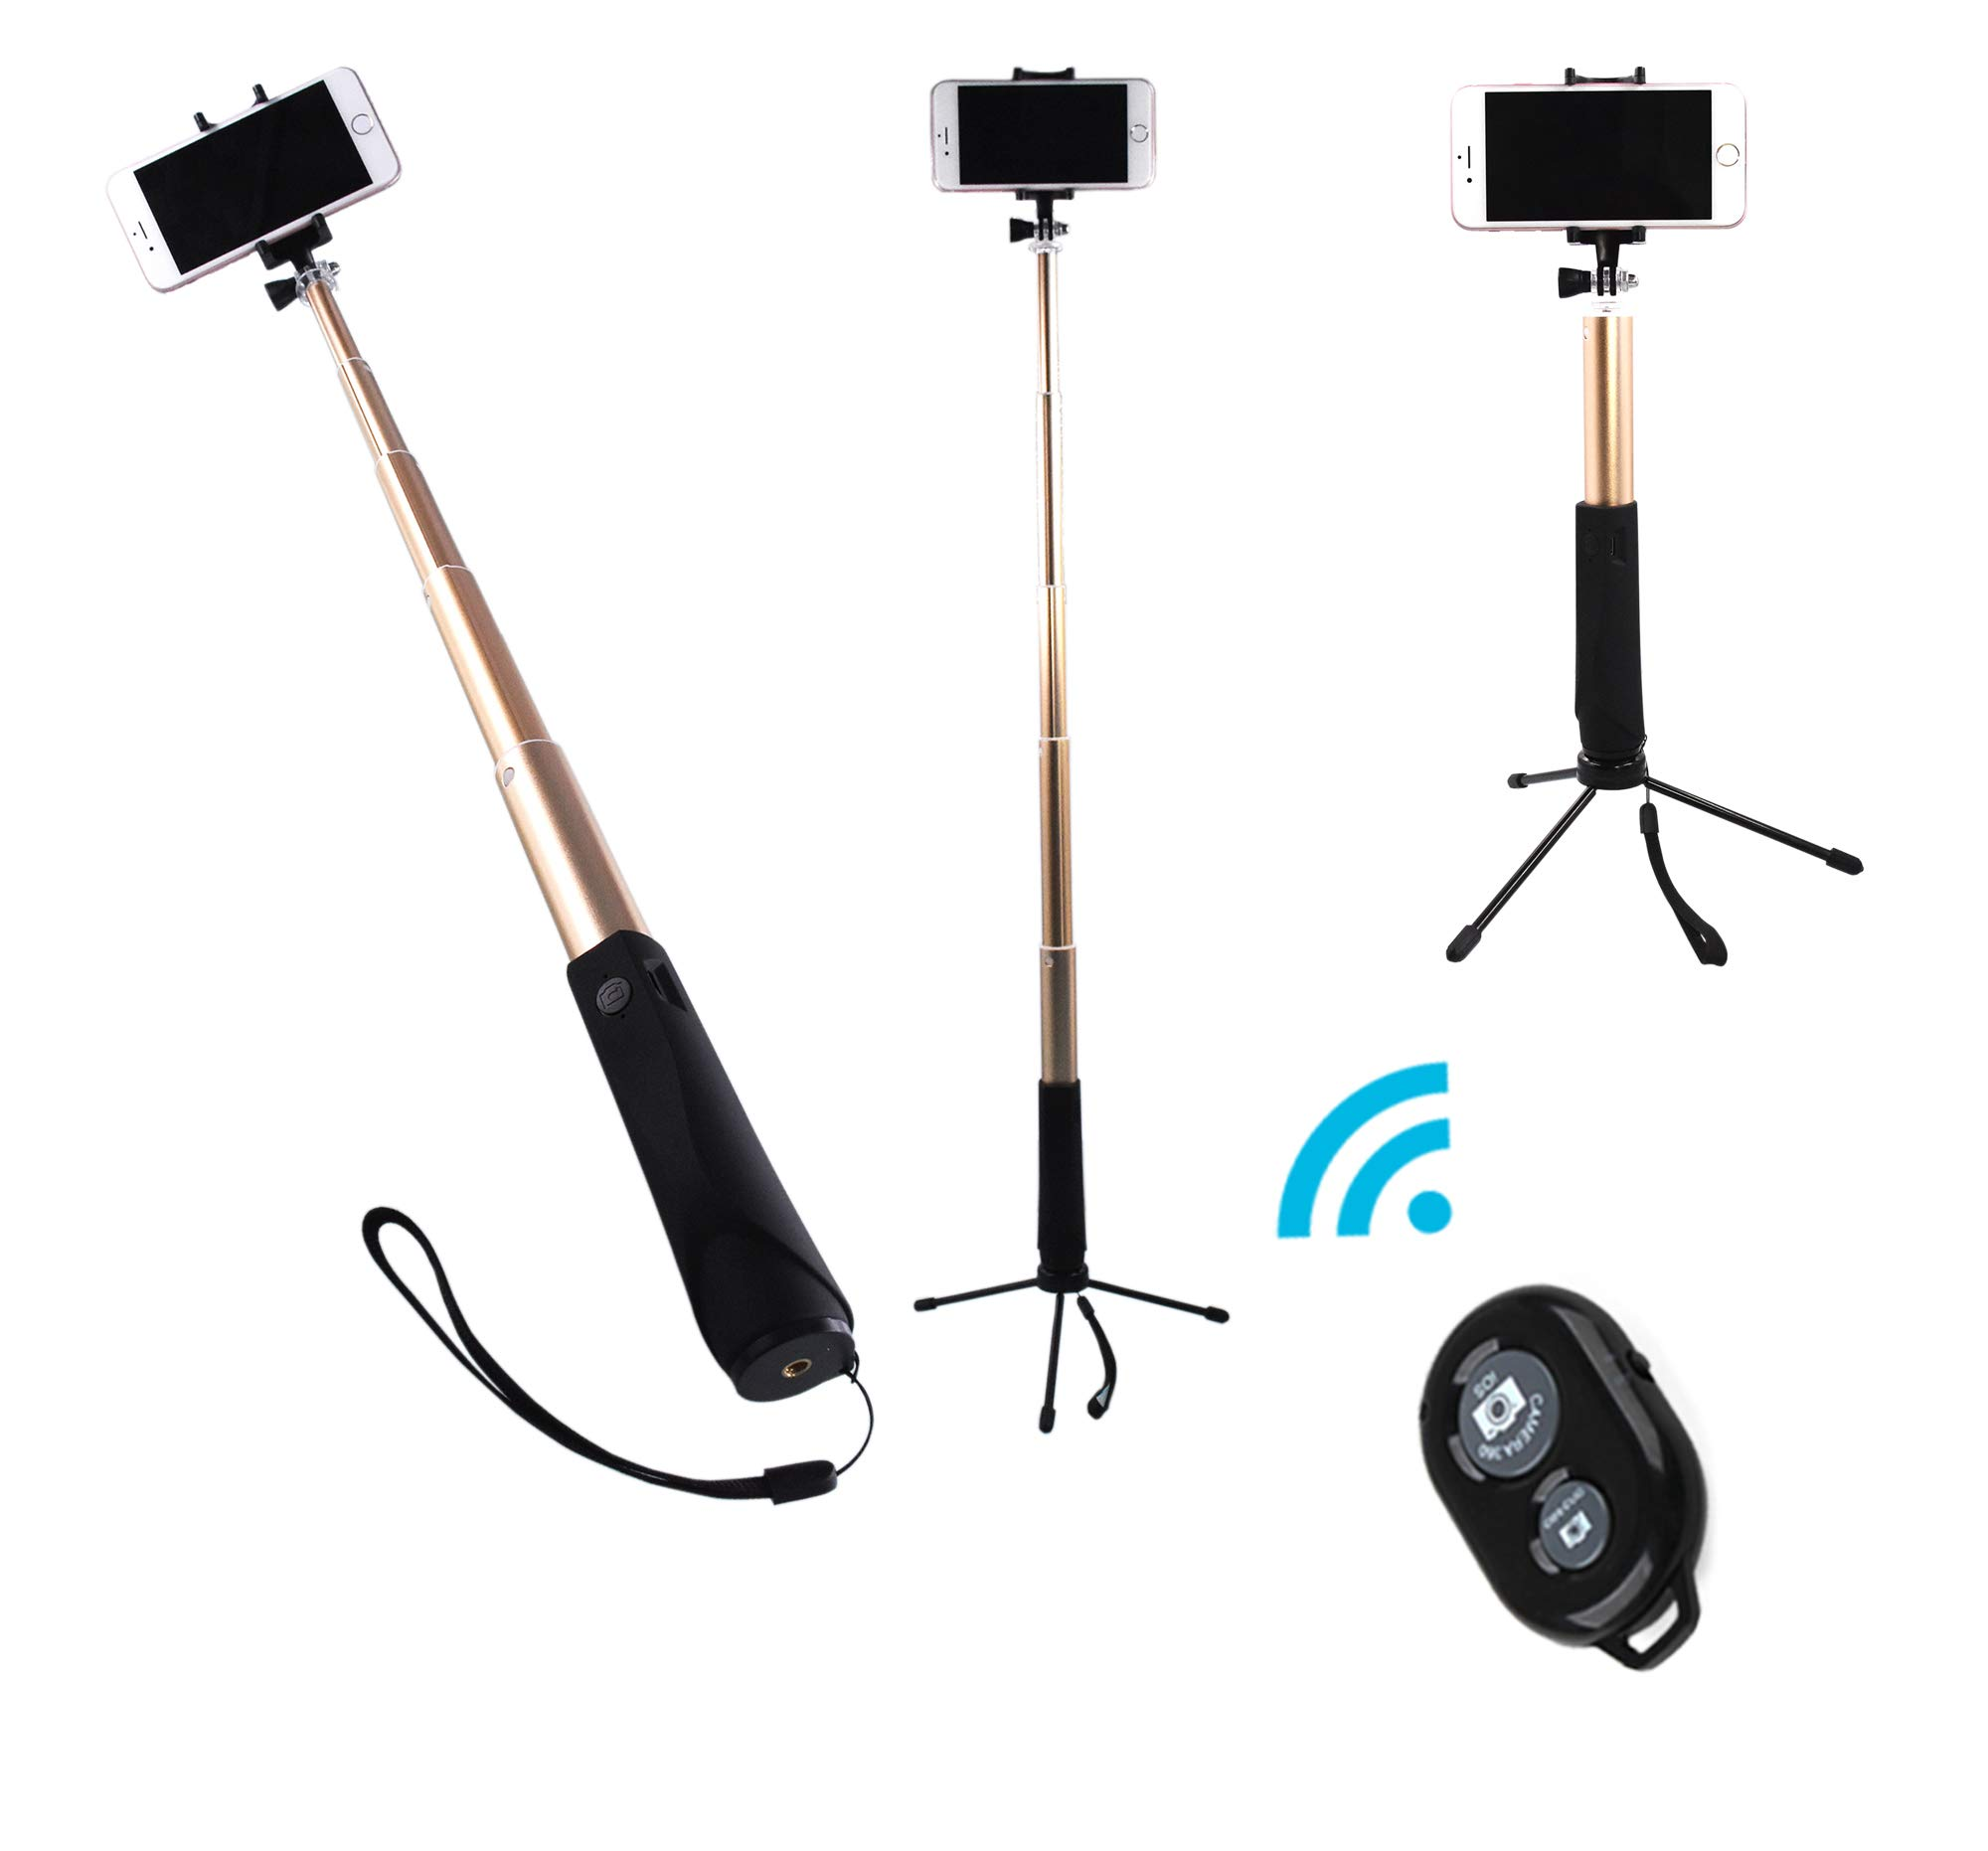 ZIZON Bluetooth Selfie Stick,Extendable Aluminum Monopod with Tripod Stand, Built-in Shutter Button, Foldable Mount Clamp & GoPro Adapter for iPhone/Android Smartphones and Action Camera. (Gold)